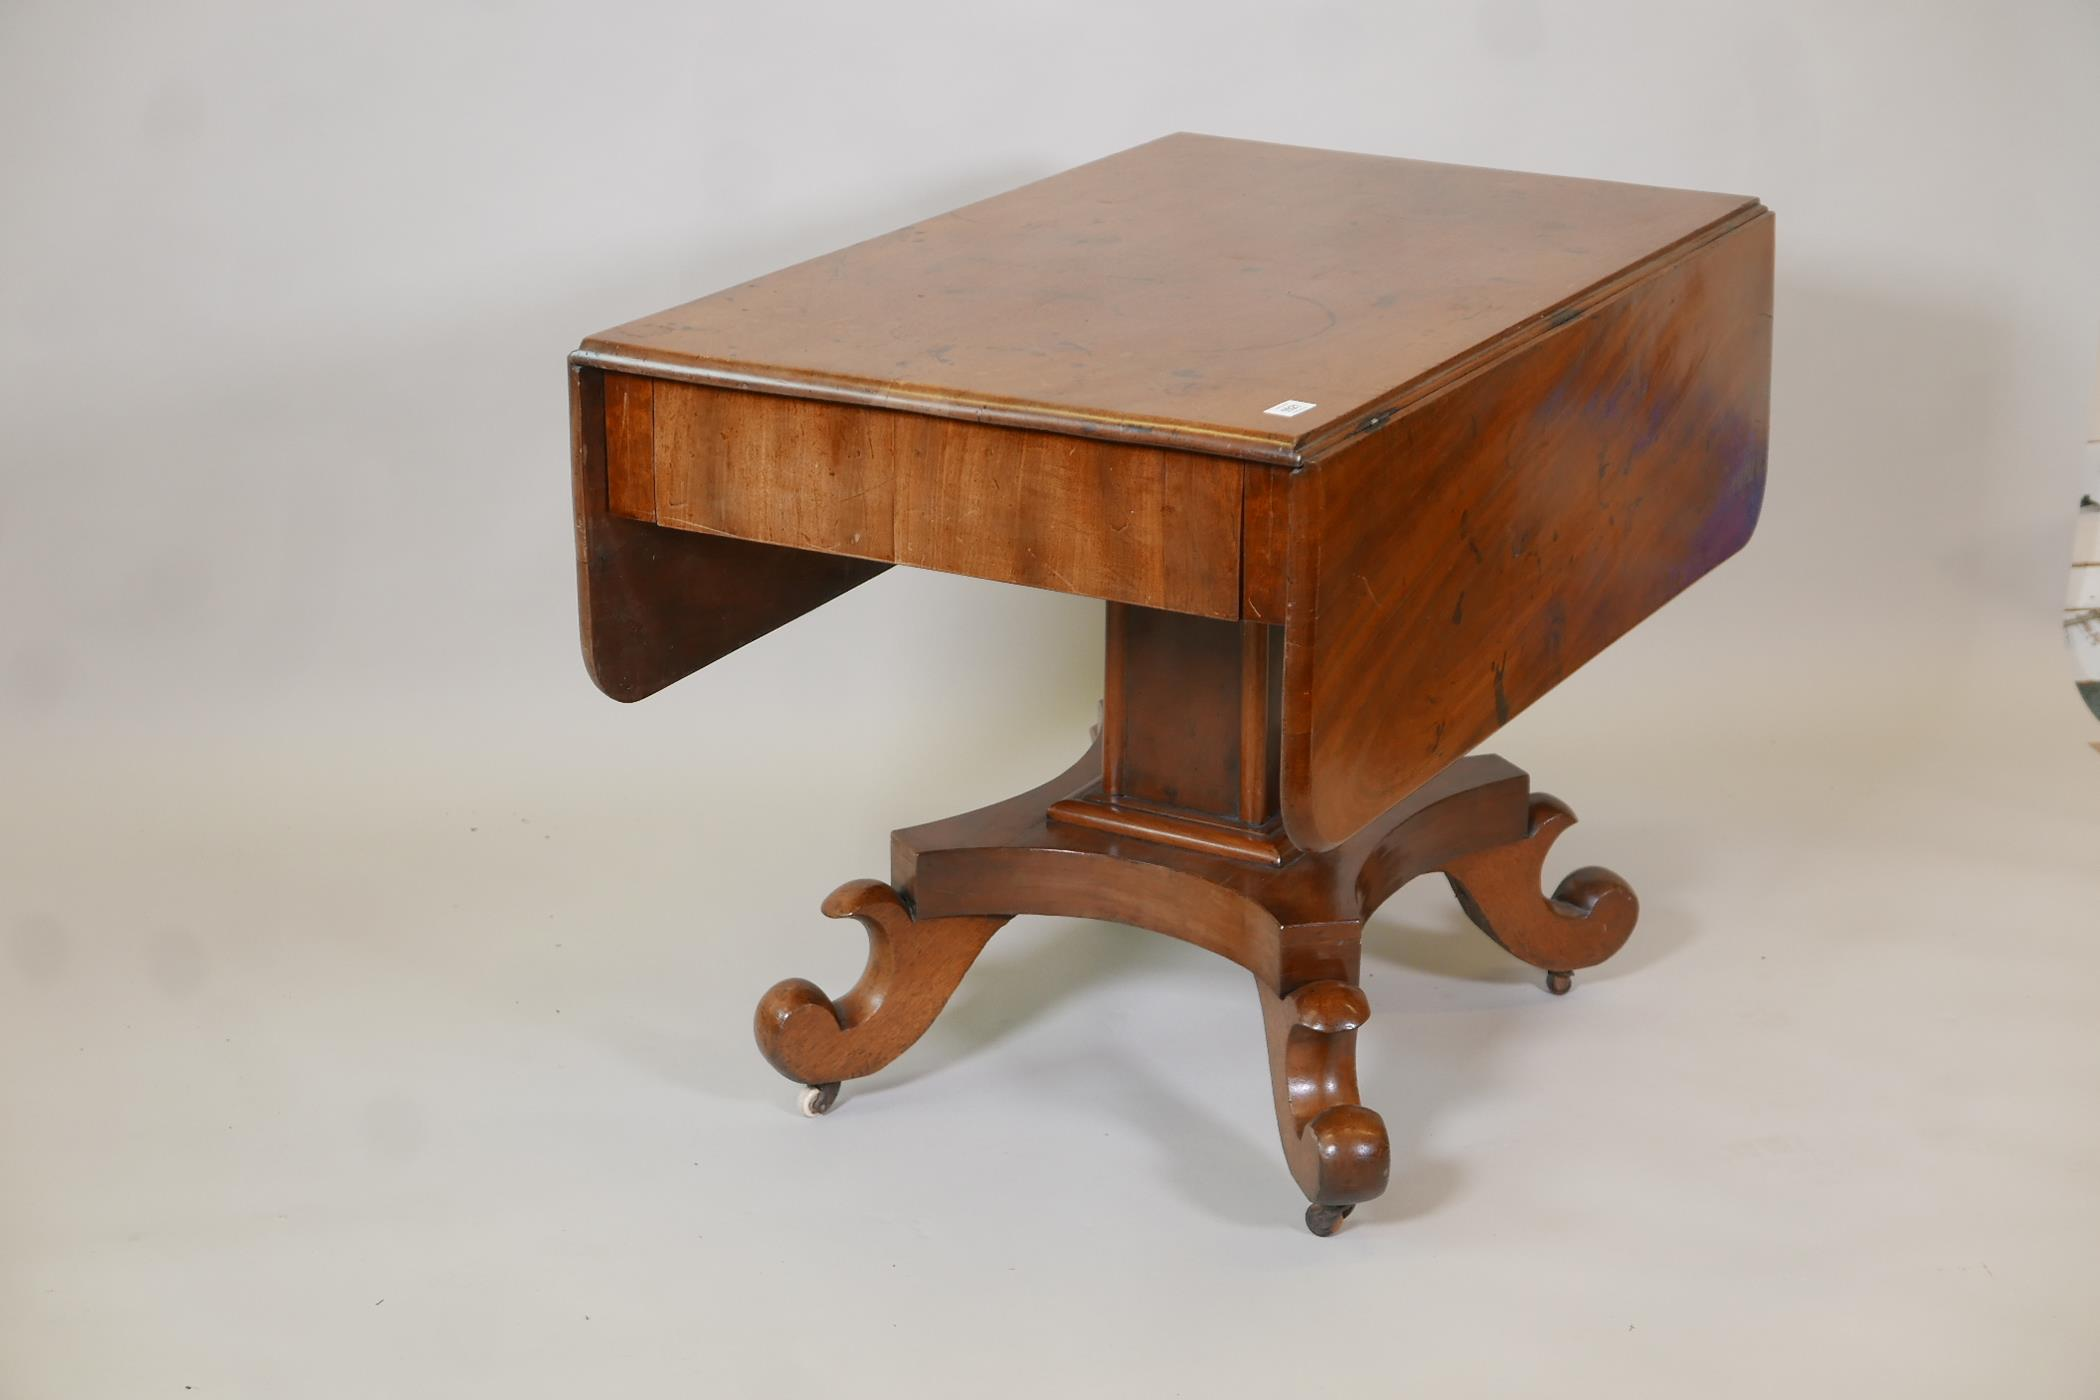 A C19th Continental mahogany sofa table with single end frieze drawer, raised on a square column and - Image 2 of 3